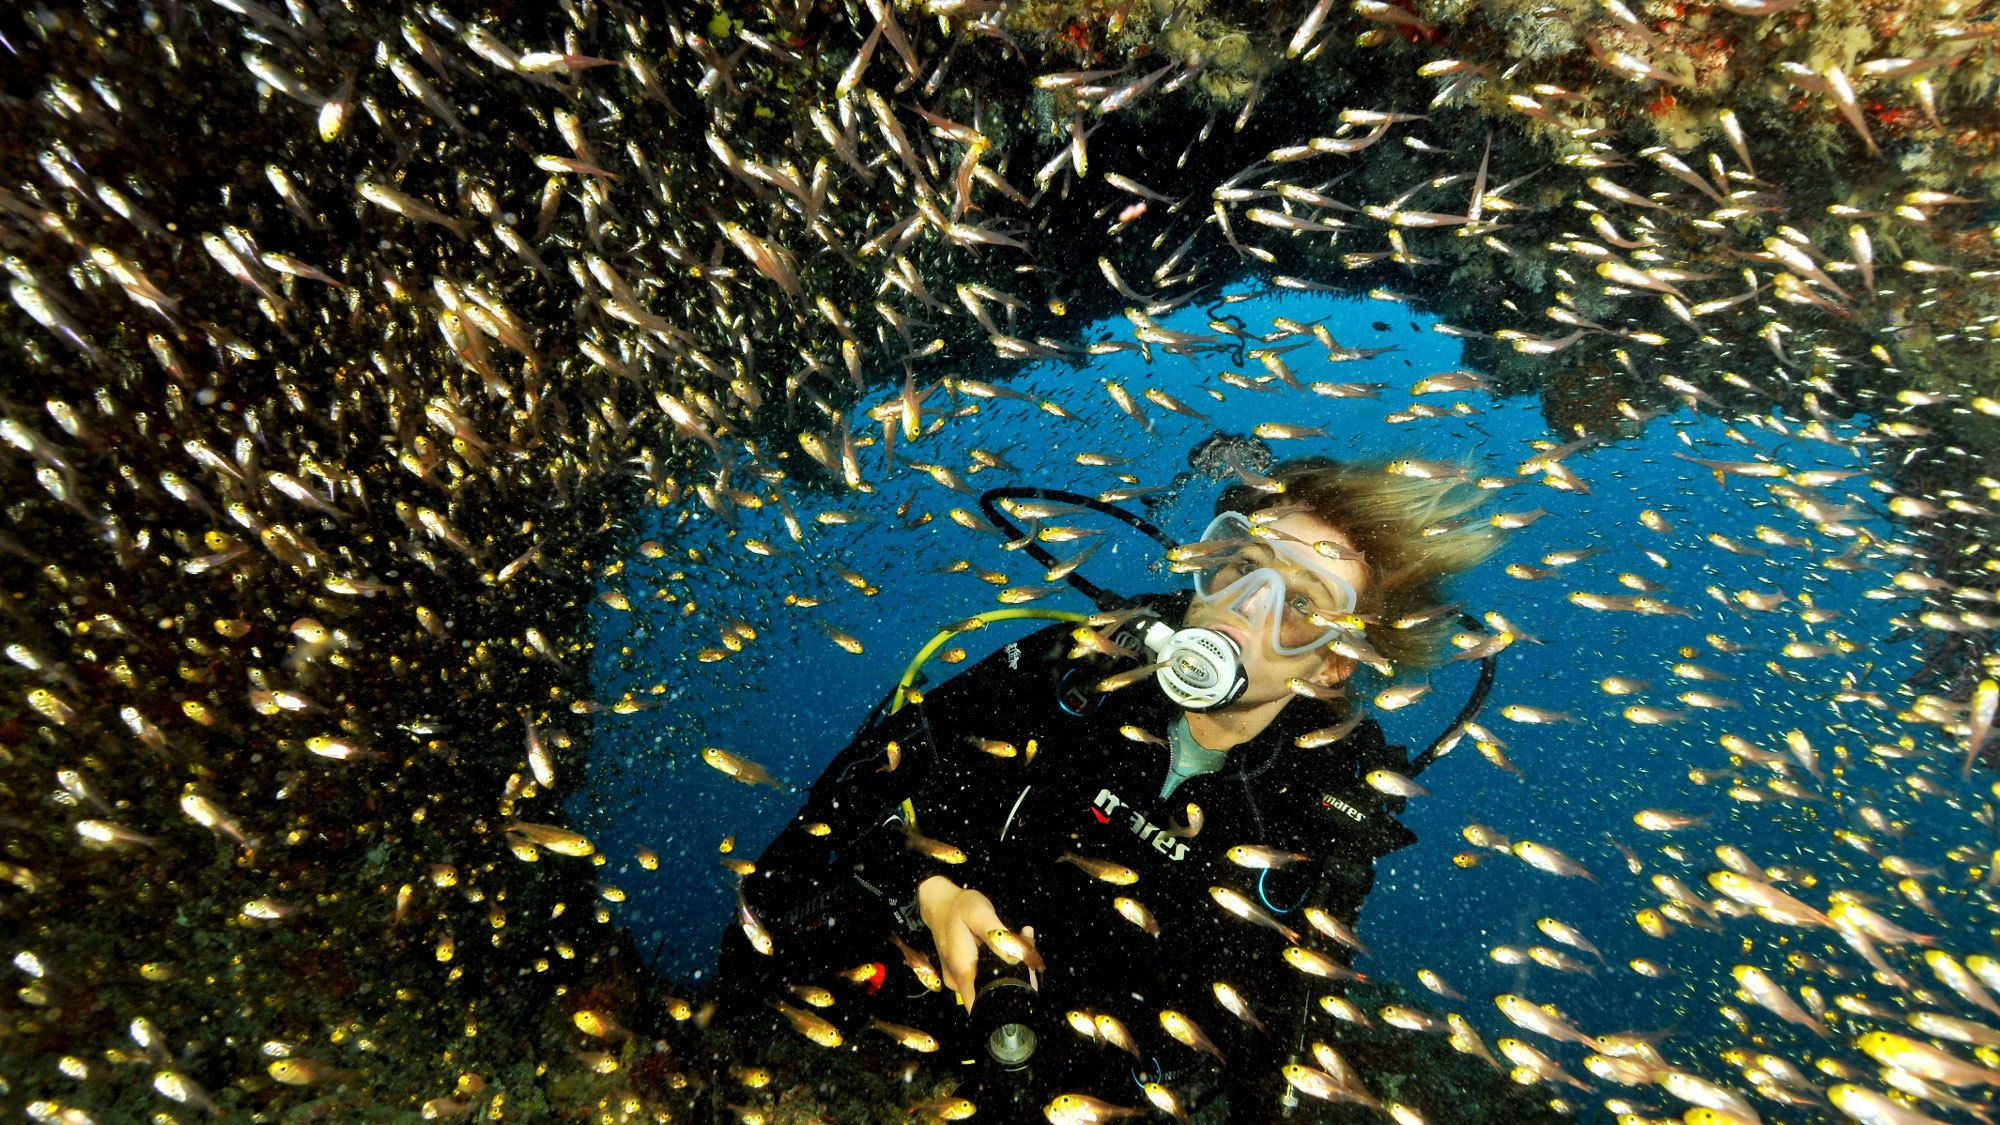 Scuba diver surrounded by a school of small fish in Lanzarote